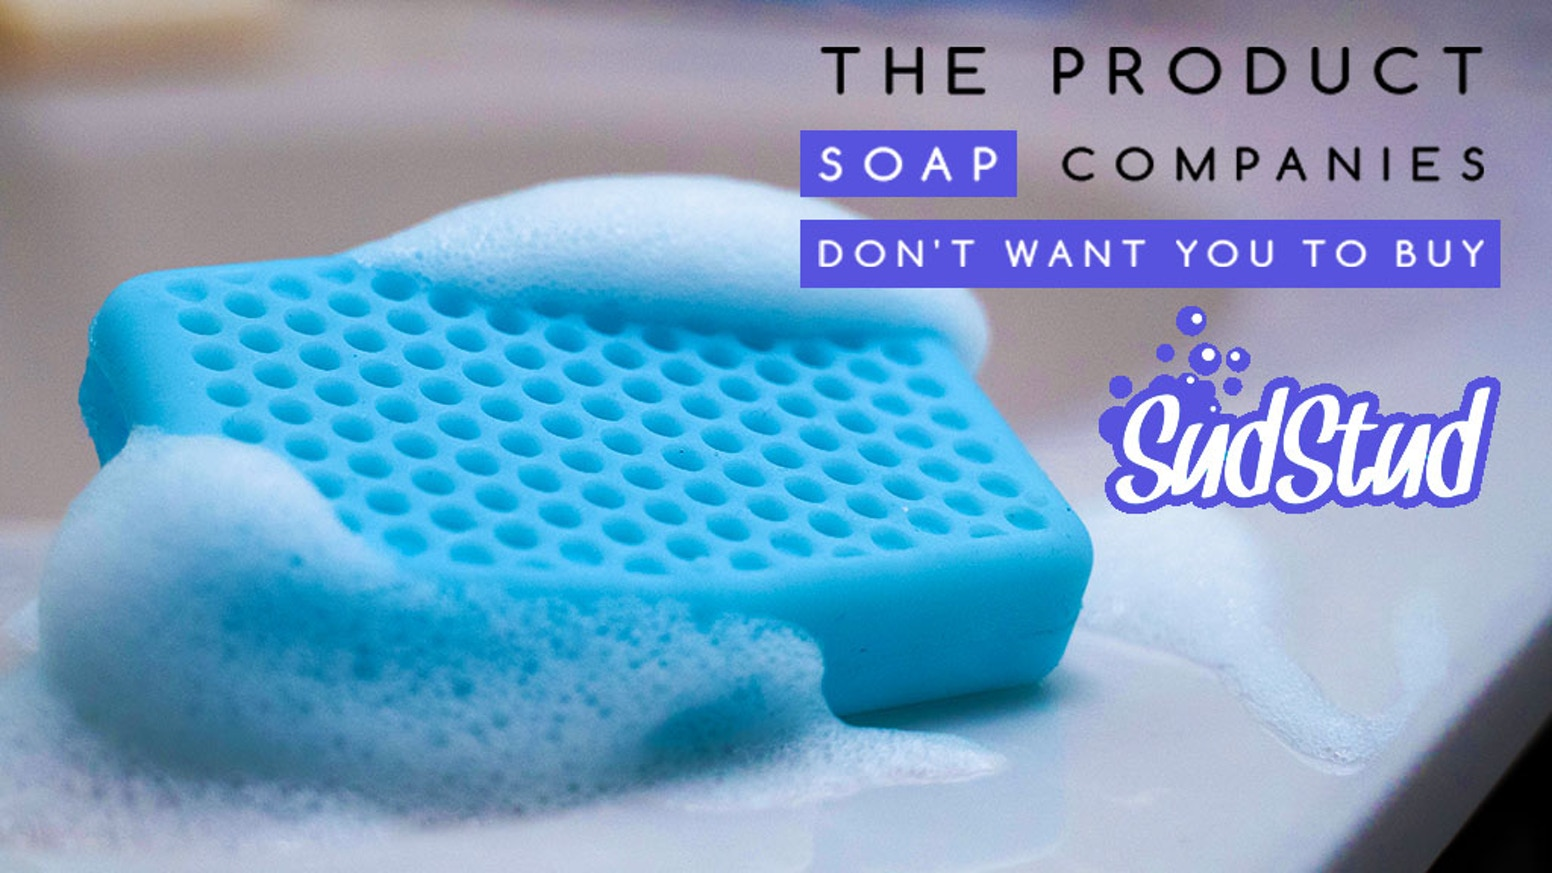 An alternative to notoriously filthy shower loofahs that saves money, cleans deeper and eliminates bathroom bacteria breeding grounds.